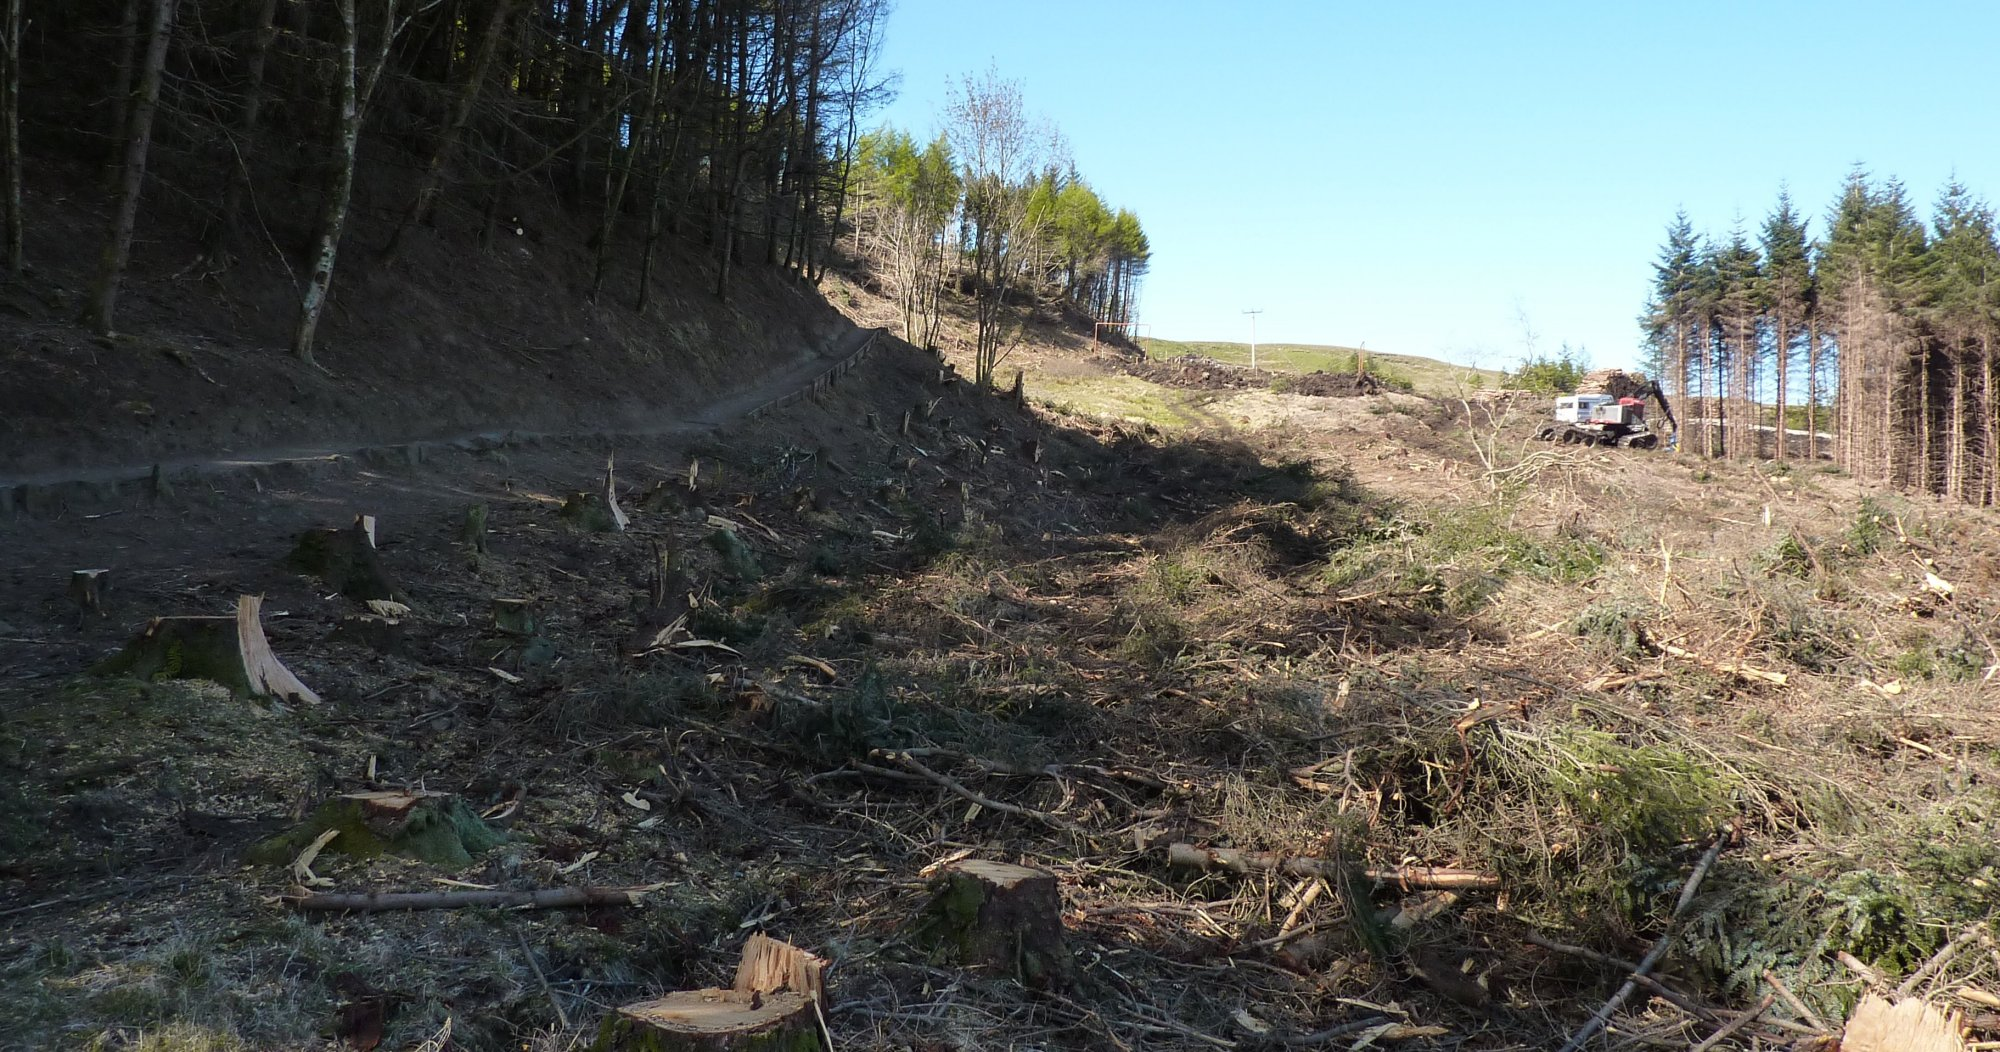 The terrible devastation of trees at the bottom of the path - it's harsh and dreadful